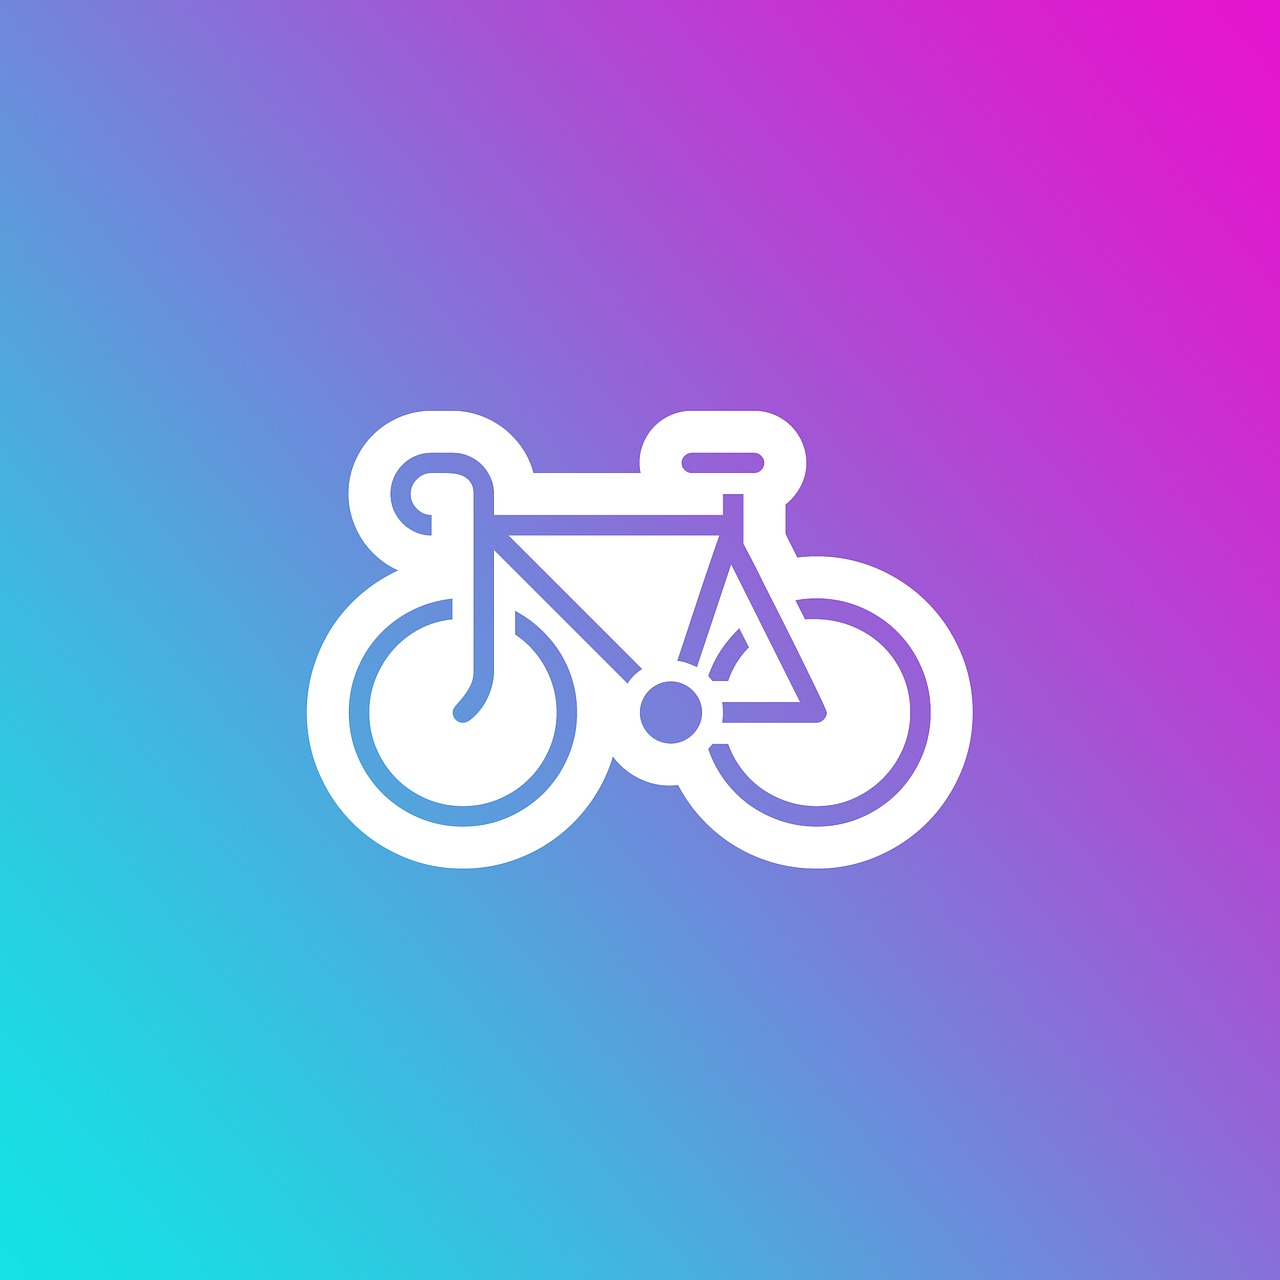 emoji gradient bike free photo